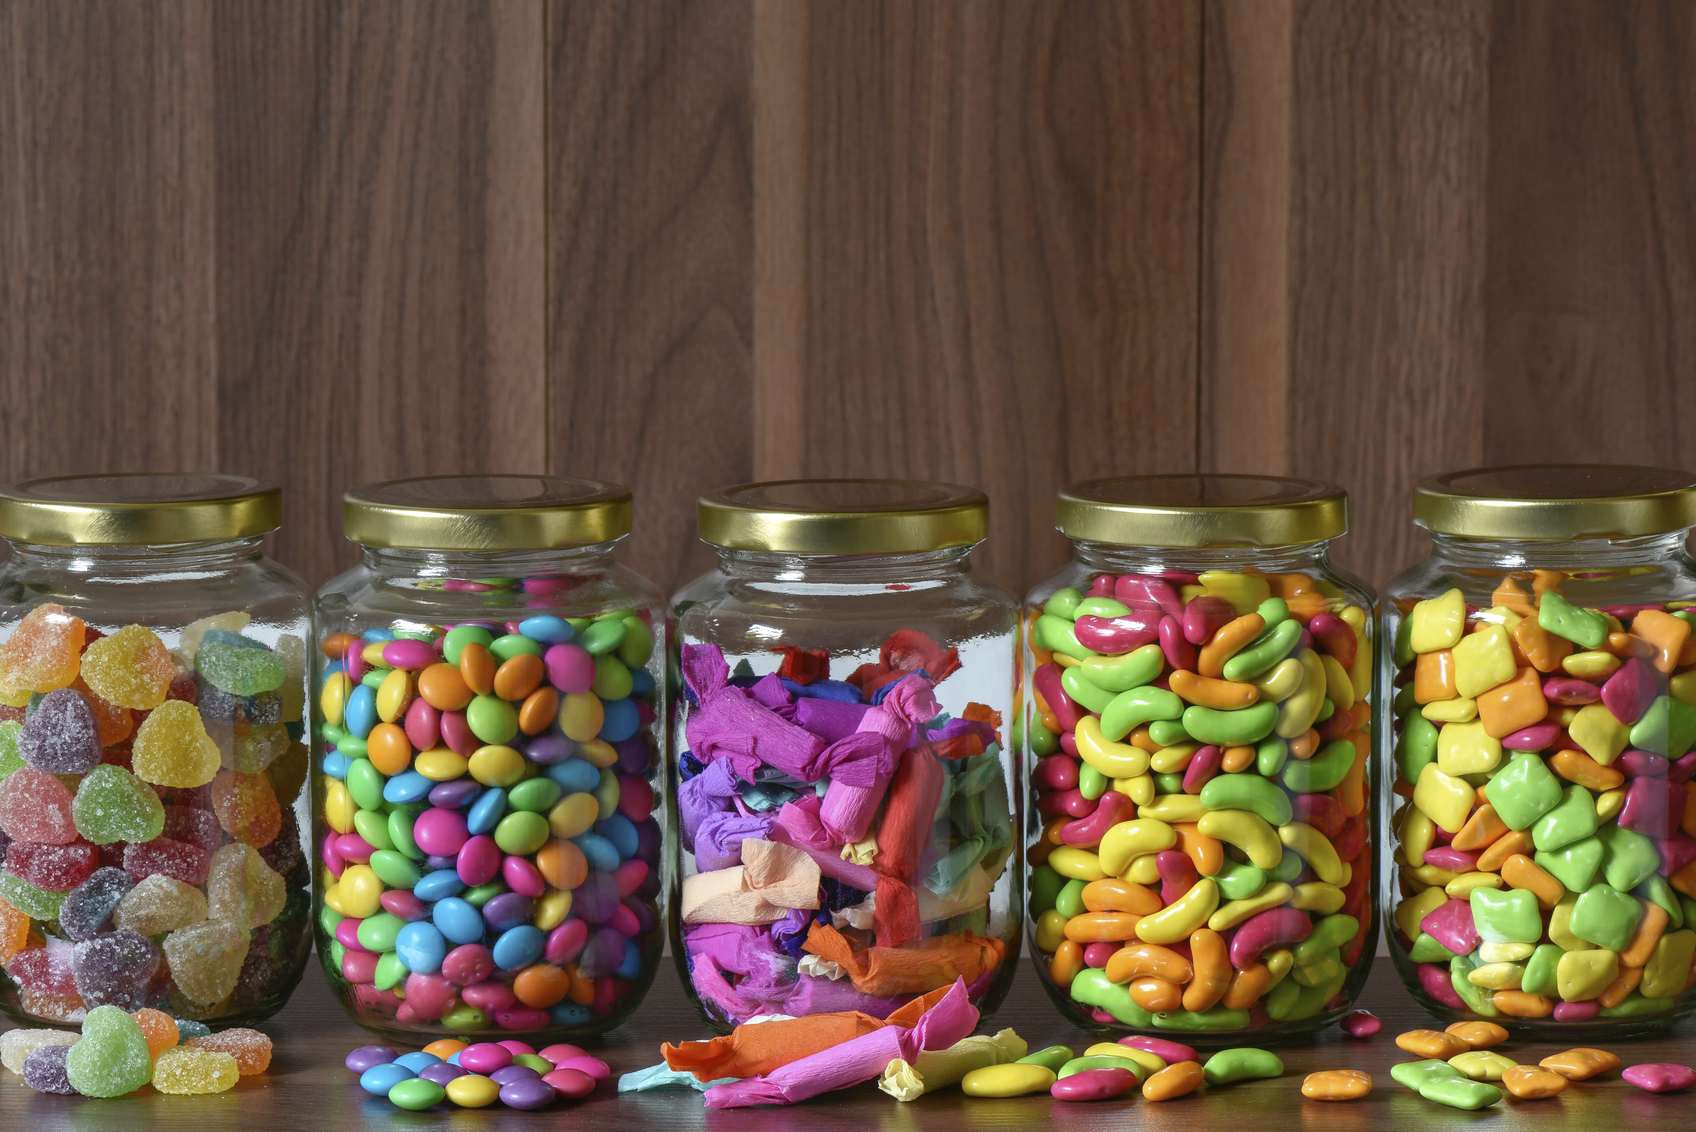 Trolli Creates Facebook Chatbot That Engages Users With Mini